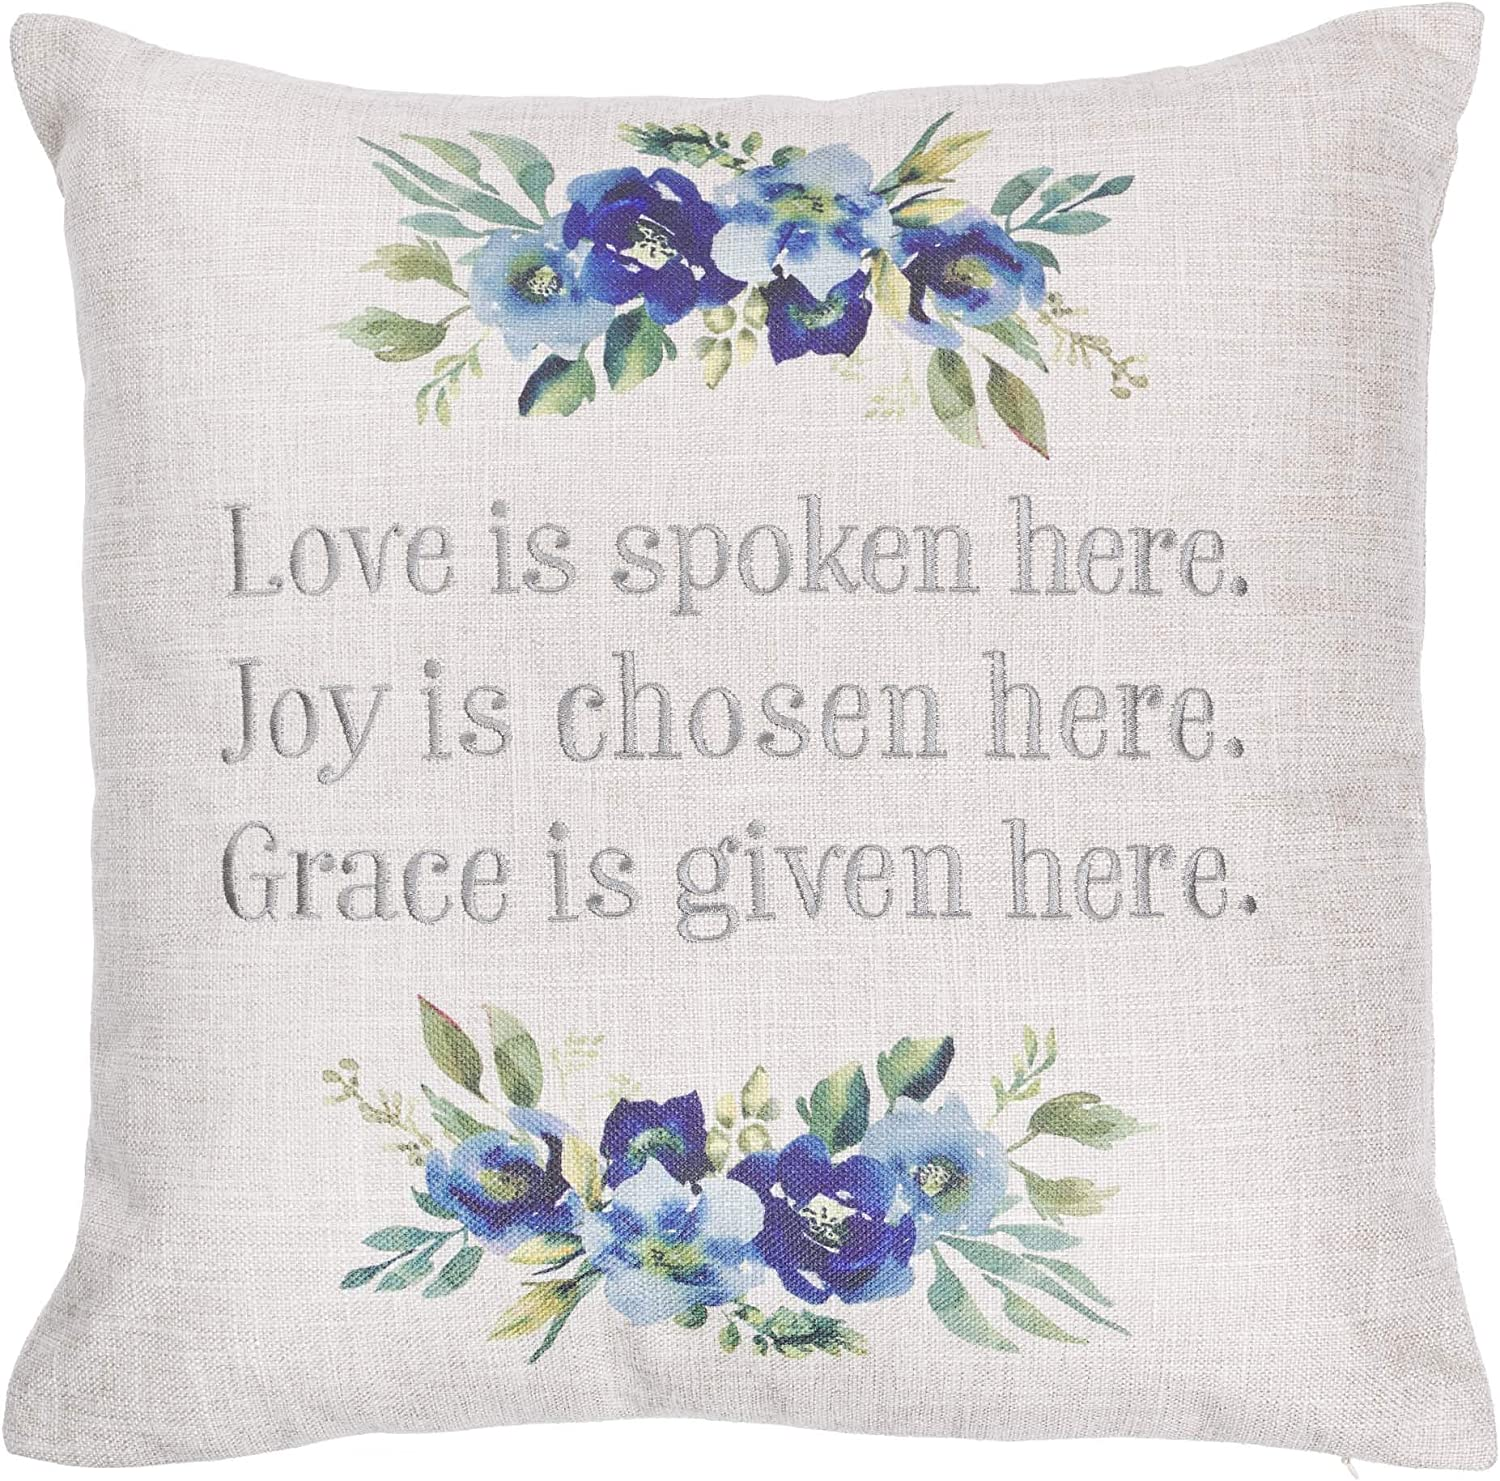 Christian Art Gifts Decorative Throw Pillow | Love Joy Grace | Embroidered Blue Floral Couch Pillow and Inspirational Home Decor, 18 x 18